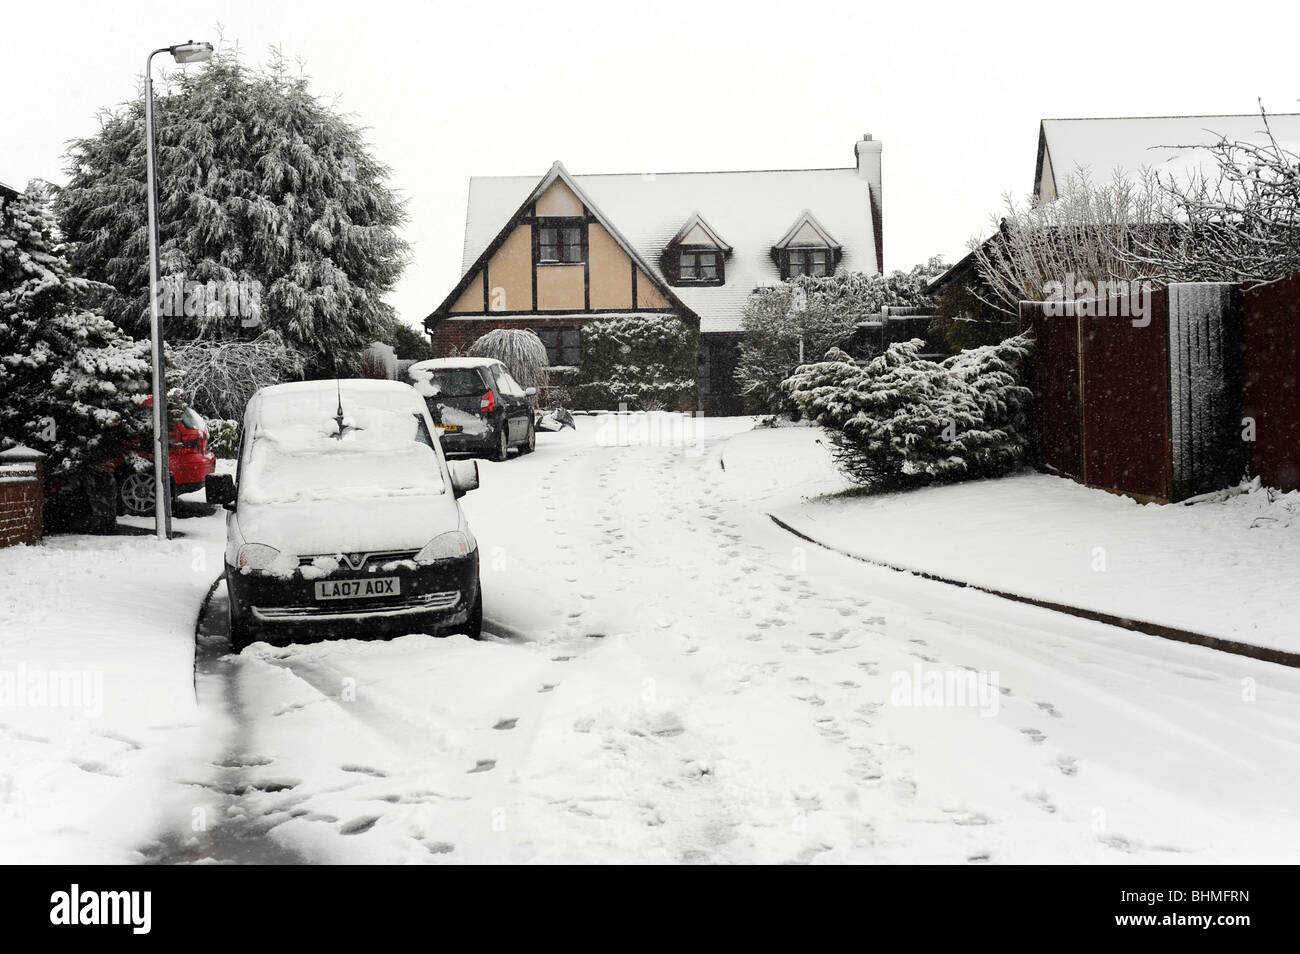 Heavy snow covers everything in this cul-de-sac in peacehaven - Stock Image